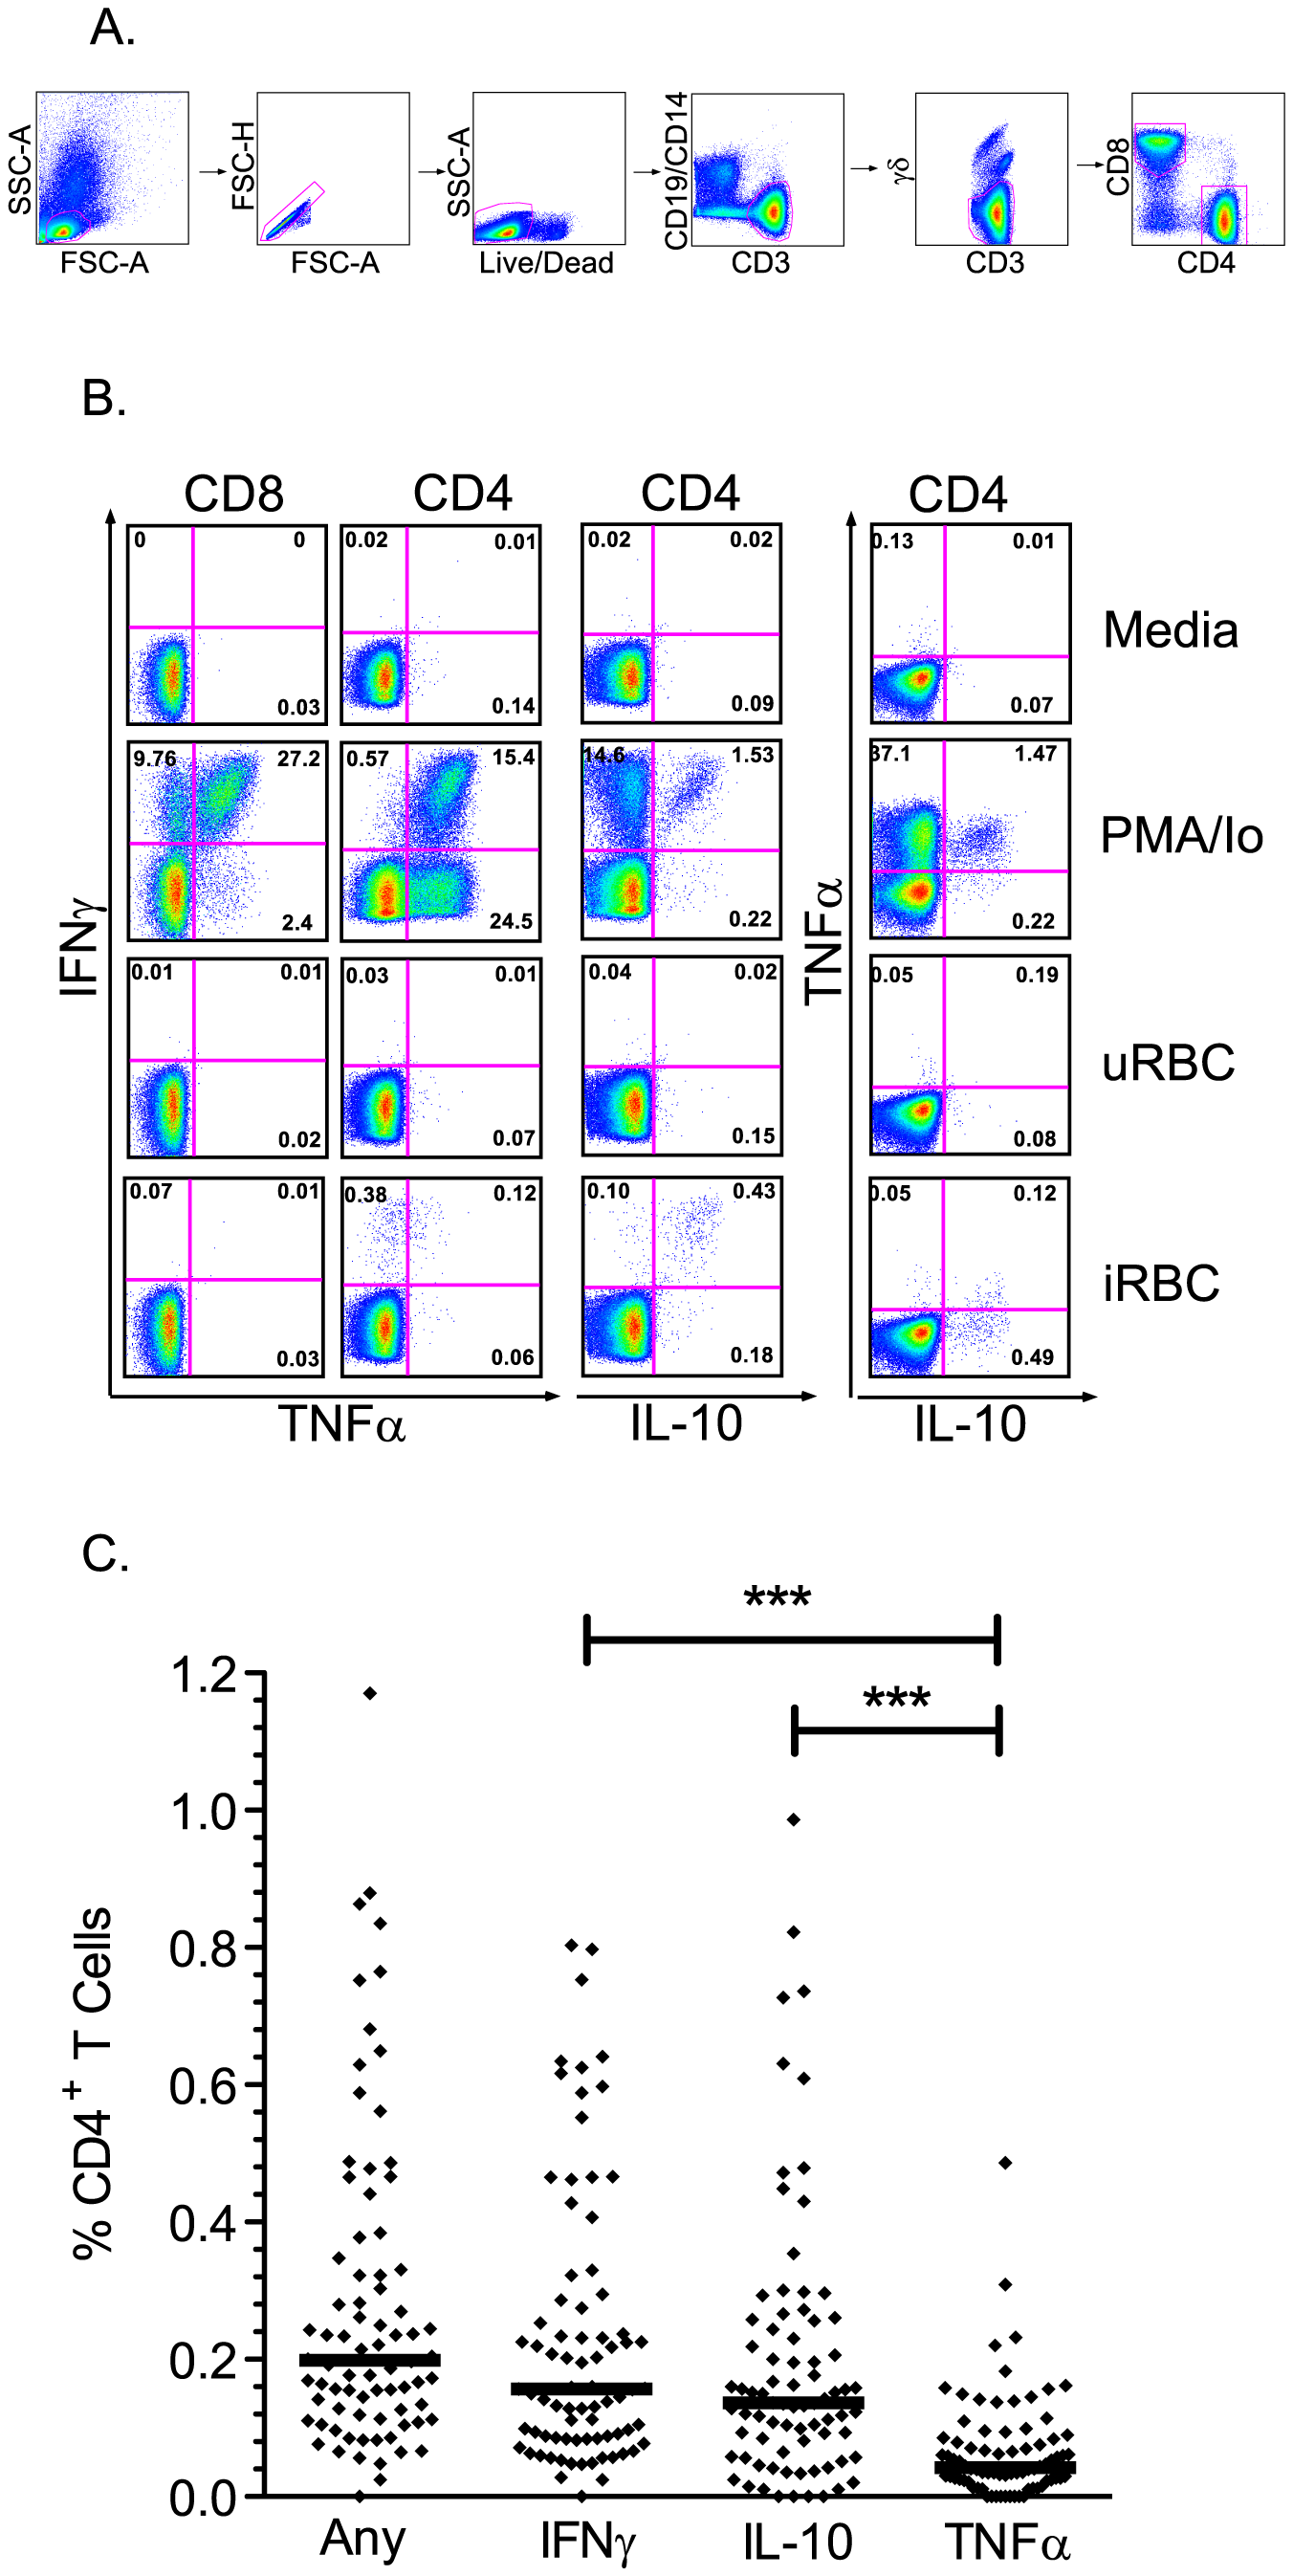 T cell responses to malaria-infected red blood cells using multiparameter flow cytometry.